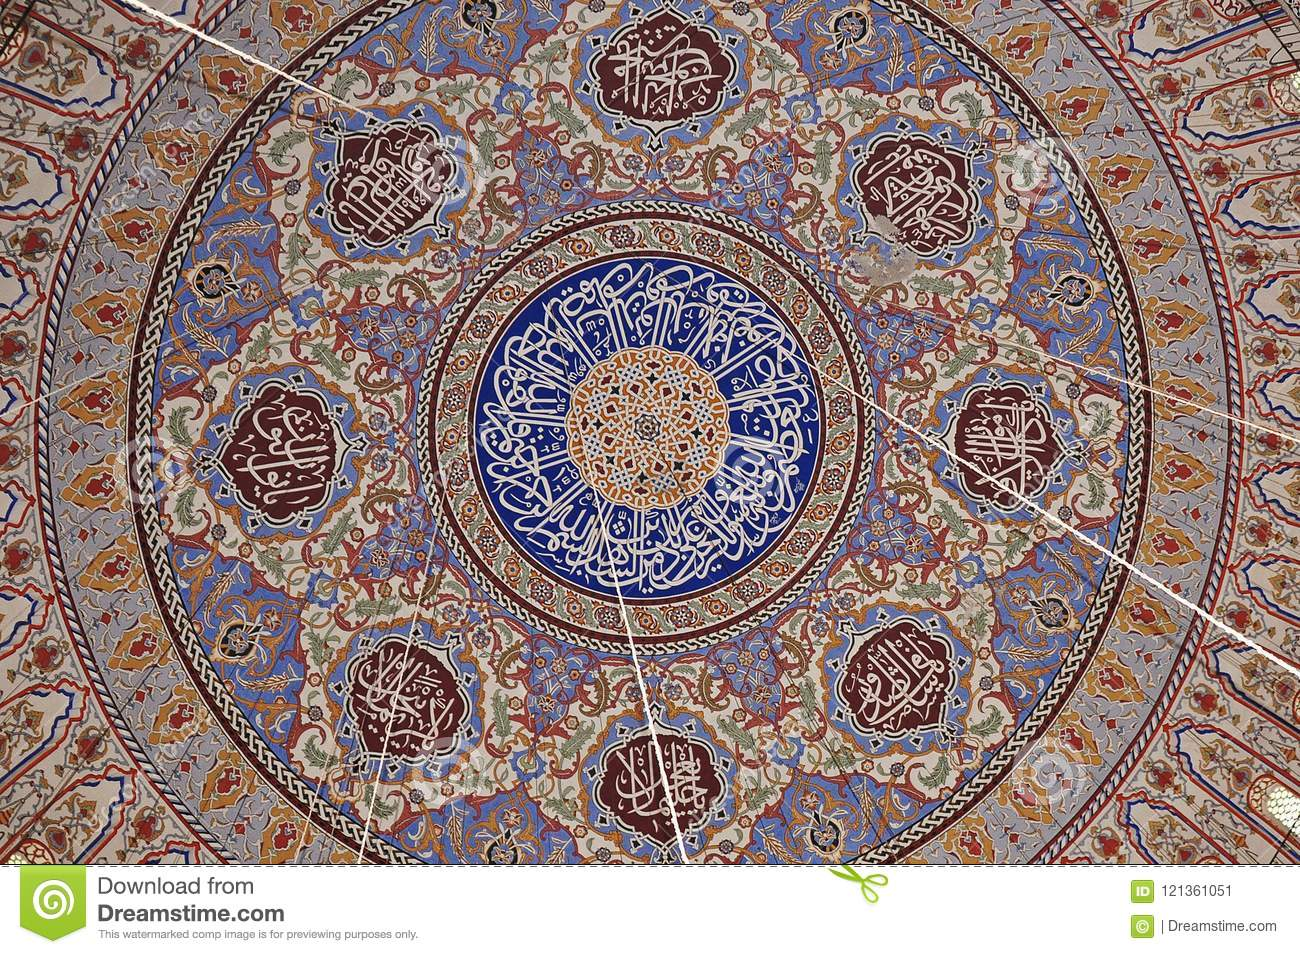 Edirne Selimiye Mosque roof pattern in Turkey. The mosque was commissioned by Sultan Selim II, and was built by architect Mimar S